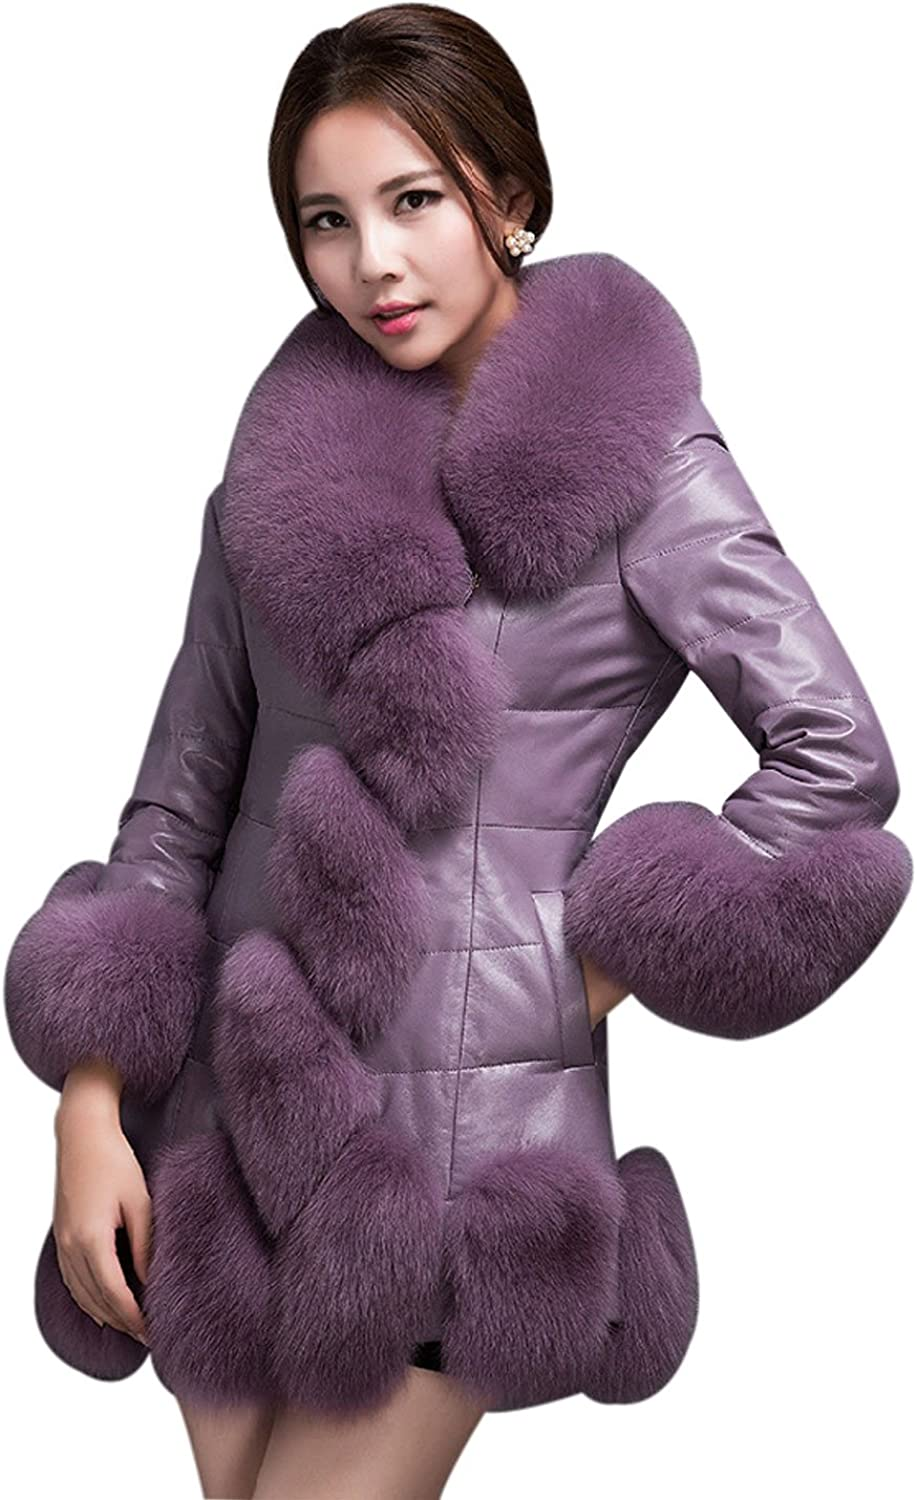 Yeokou Women's Long Faux Fur PU Leather Quilted Cotton Padded Jacket Parka Coat